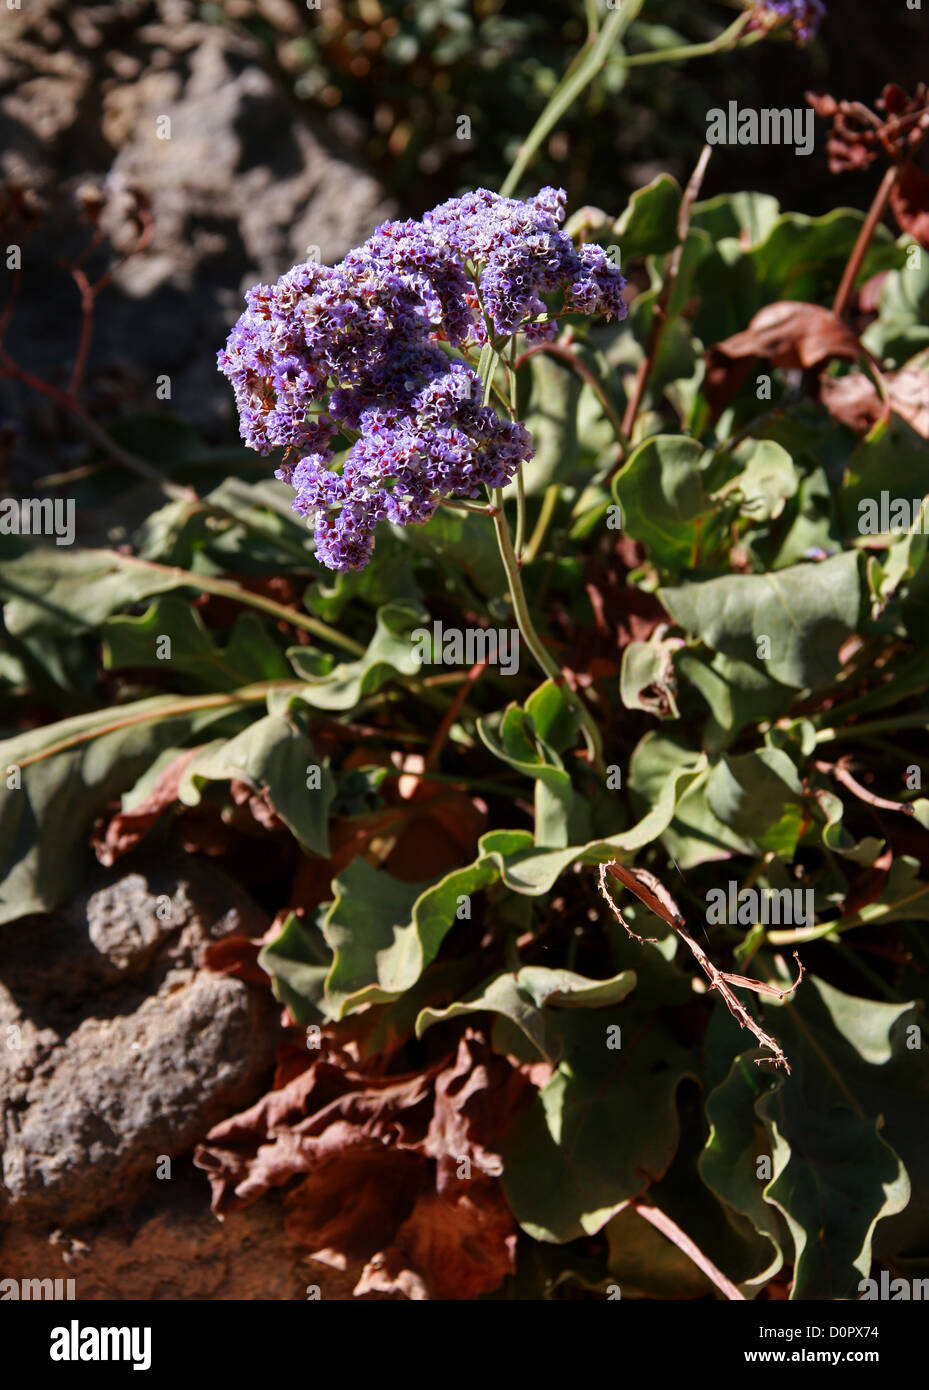 Sea Lavender, Statice, or Marsh-rosemary, Limonium perezii, Plumbaginaceae. Tenerife, Canary Islands. - Stock Image